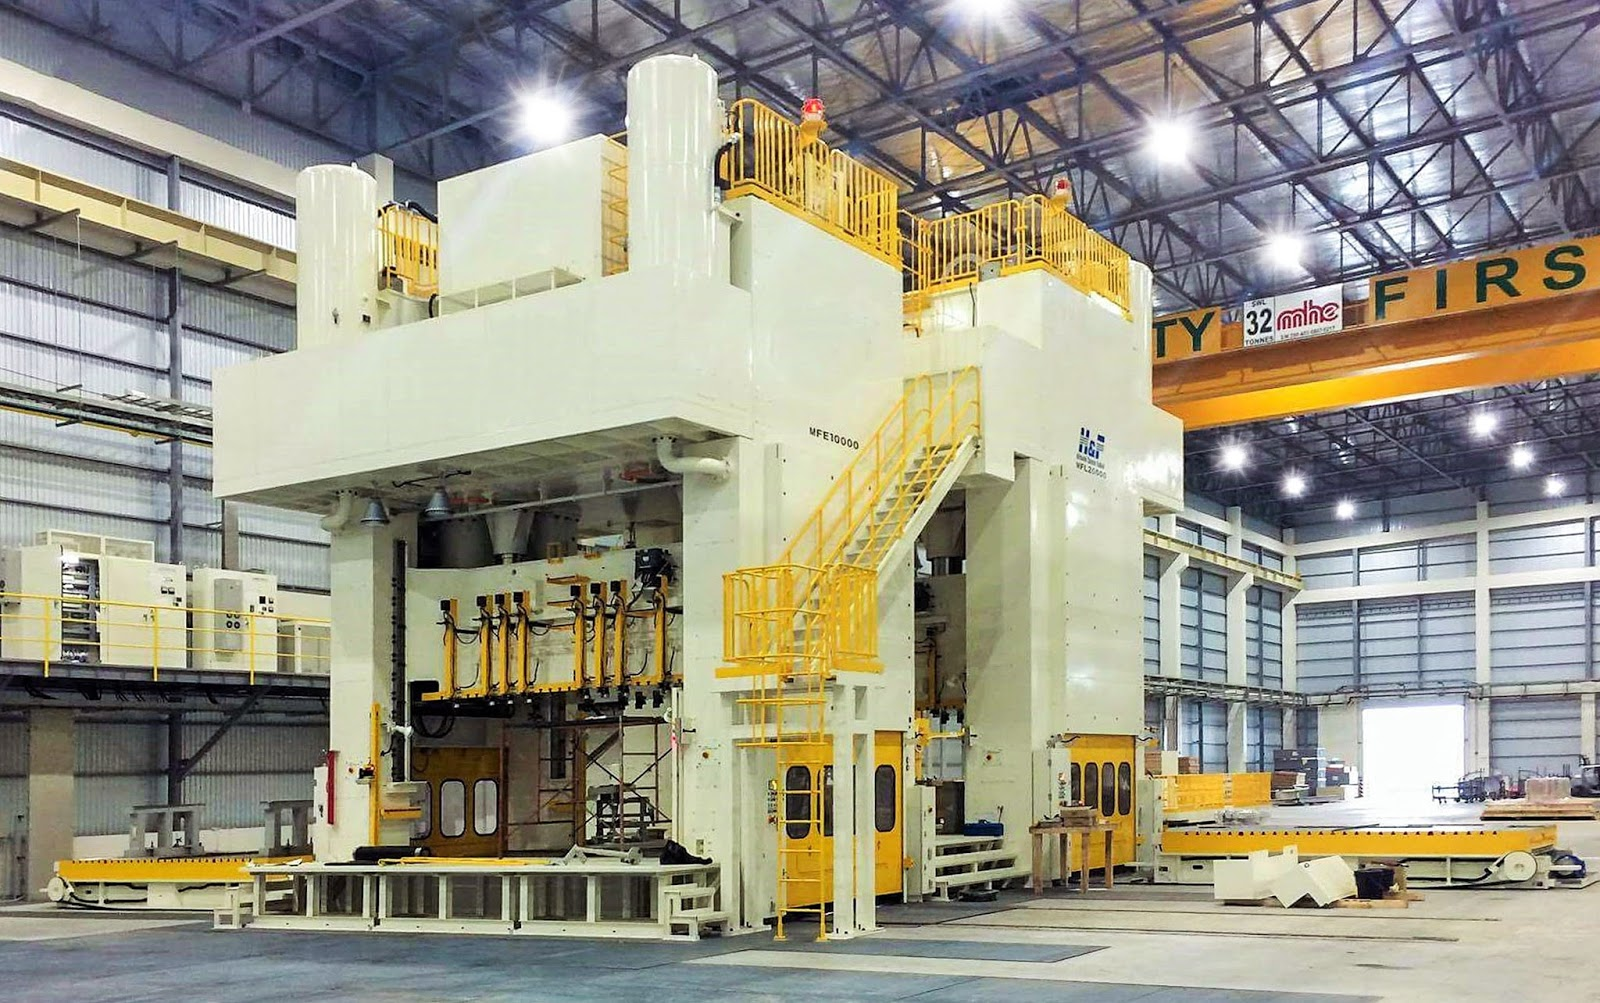 Mitsubishi Motors Philippines' 2,000 and 1,000-ton stamping machine